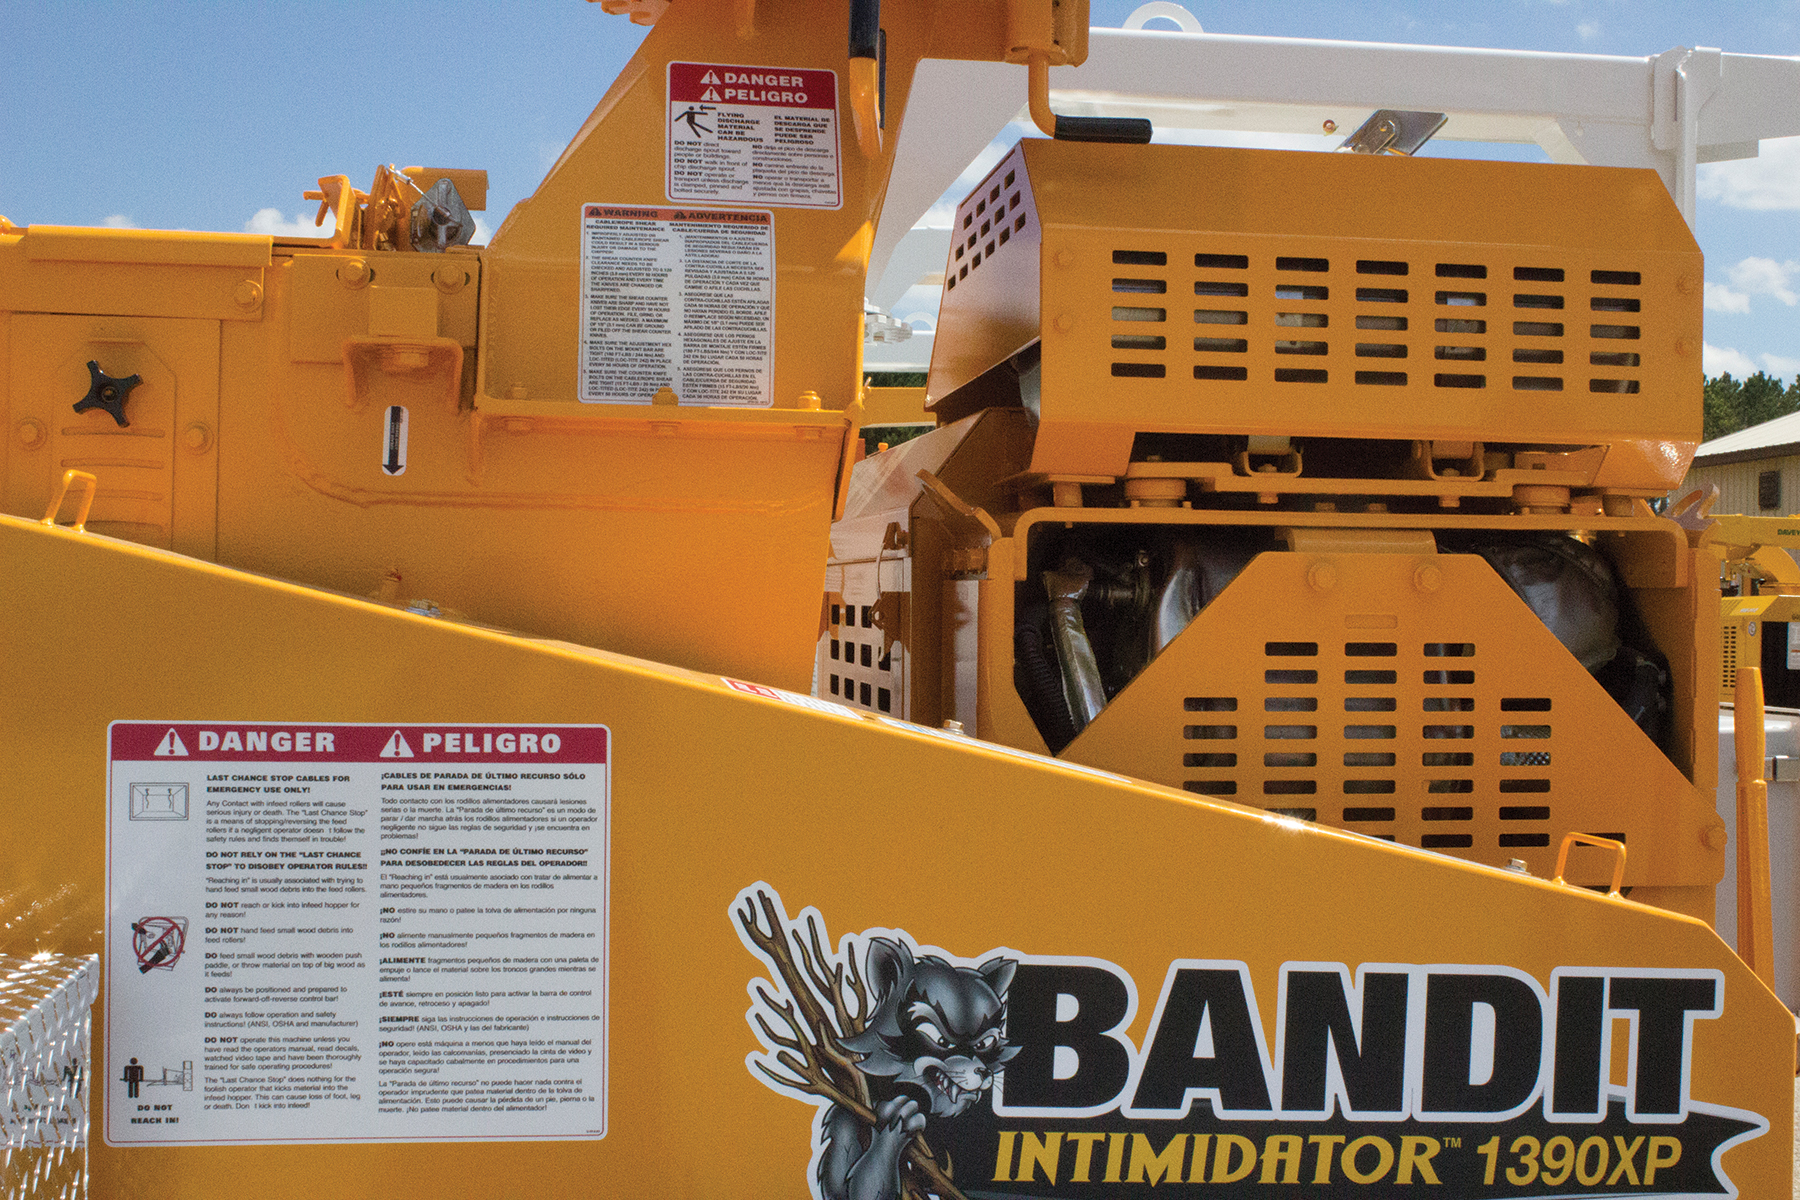 Numerous decals located on the machine that contain important information to assist in operating your equipment safely.